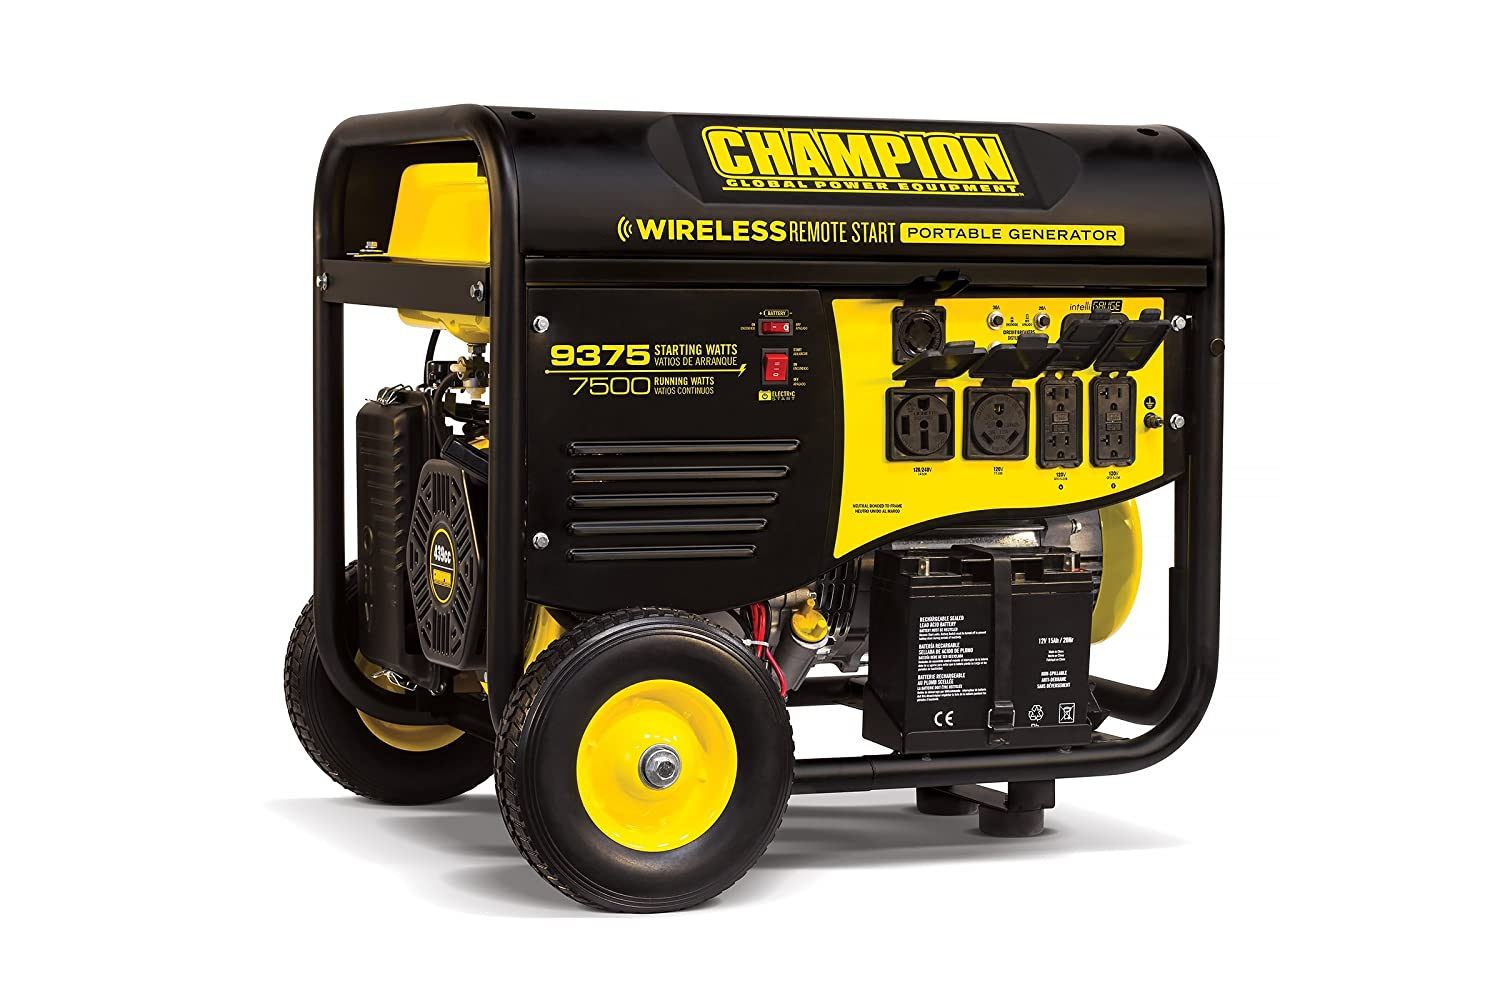 Amazon.com: Champion 7500-Watt RV Ready Portable Generator with Wireless  Remote Start: Garden & Outdoor